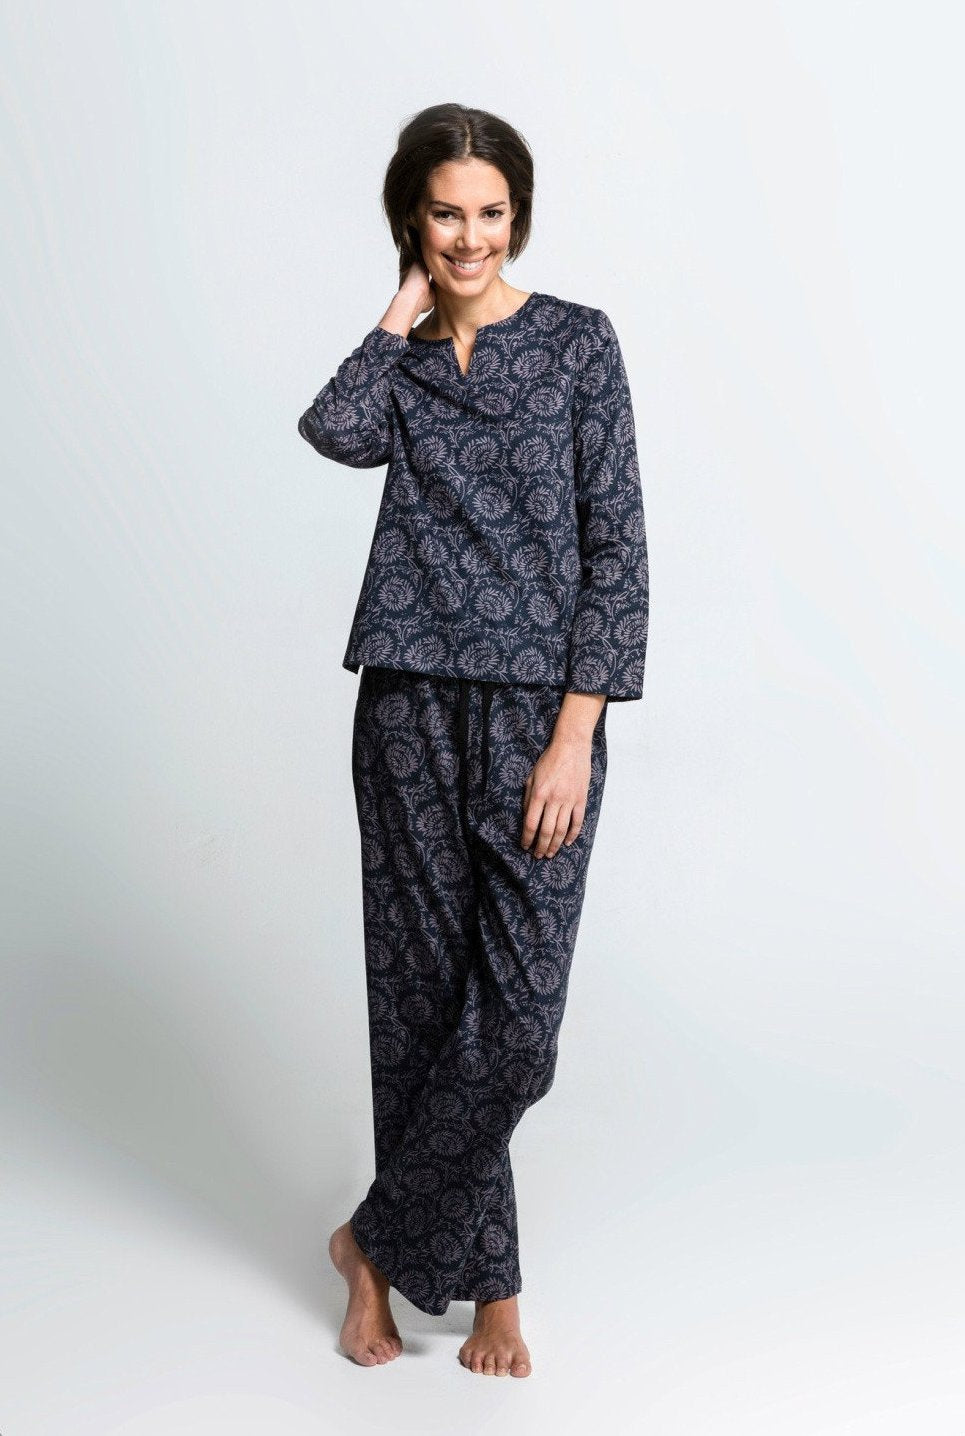 Dahlia - Organic Cotton Pyjamas - Tunic Top with Pants Set